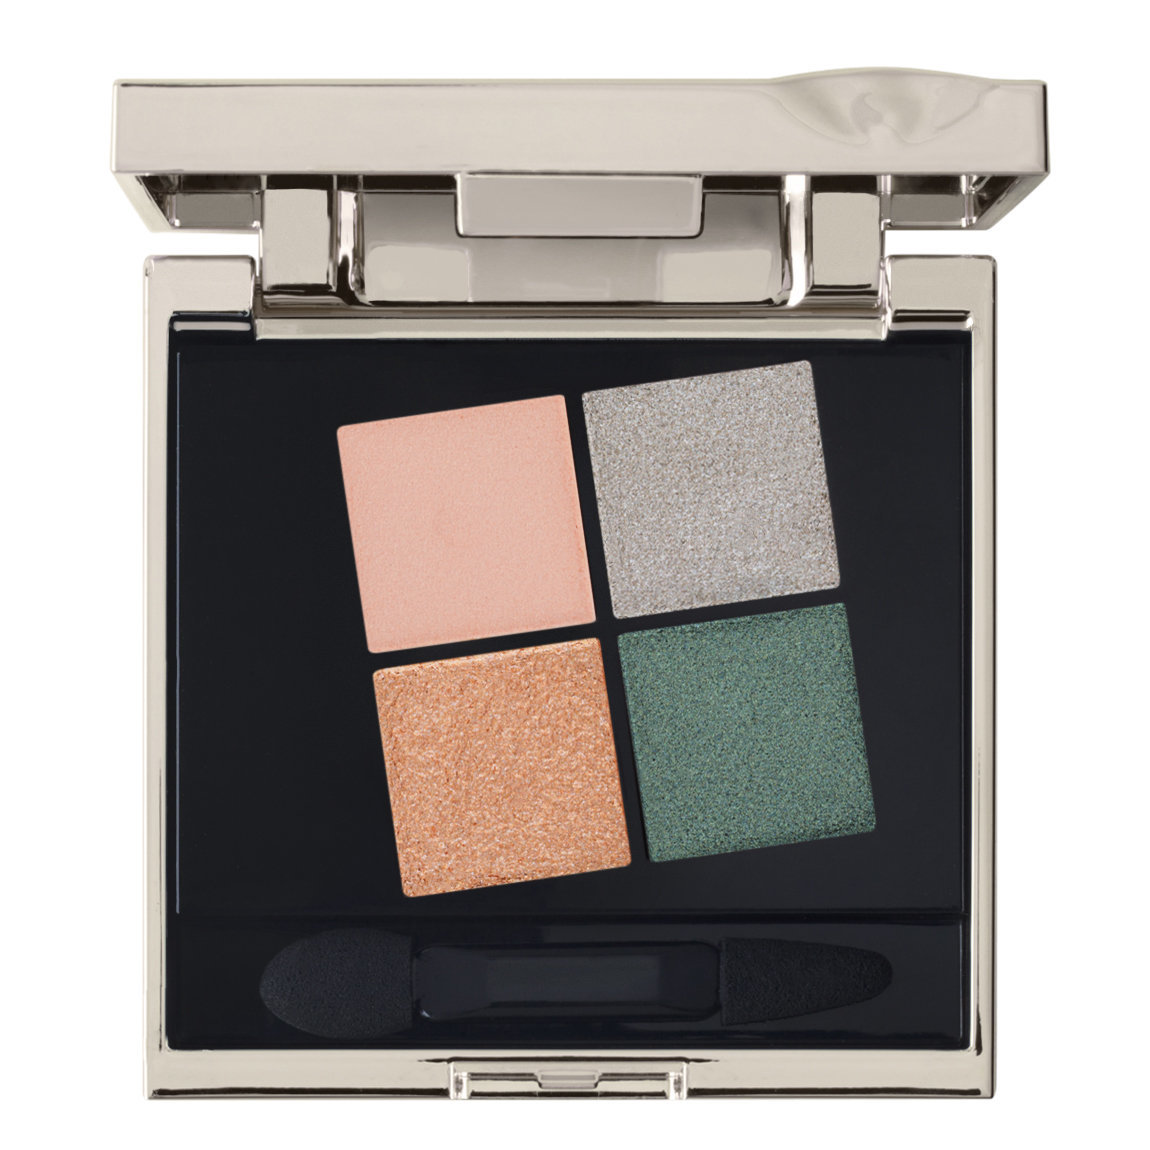 Smith & Cult Book of Eyes Eye Quad Palette Song For Fields product swatch.